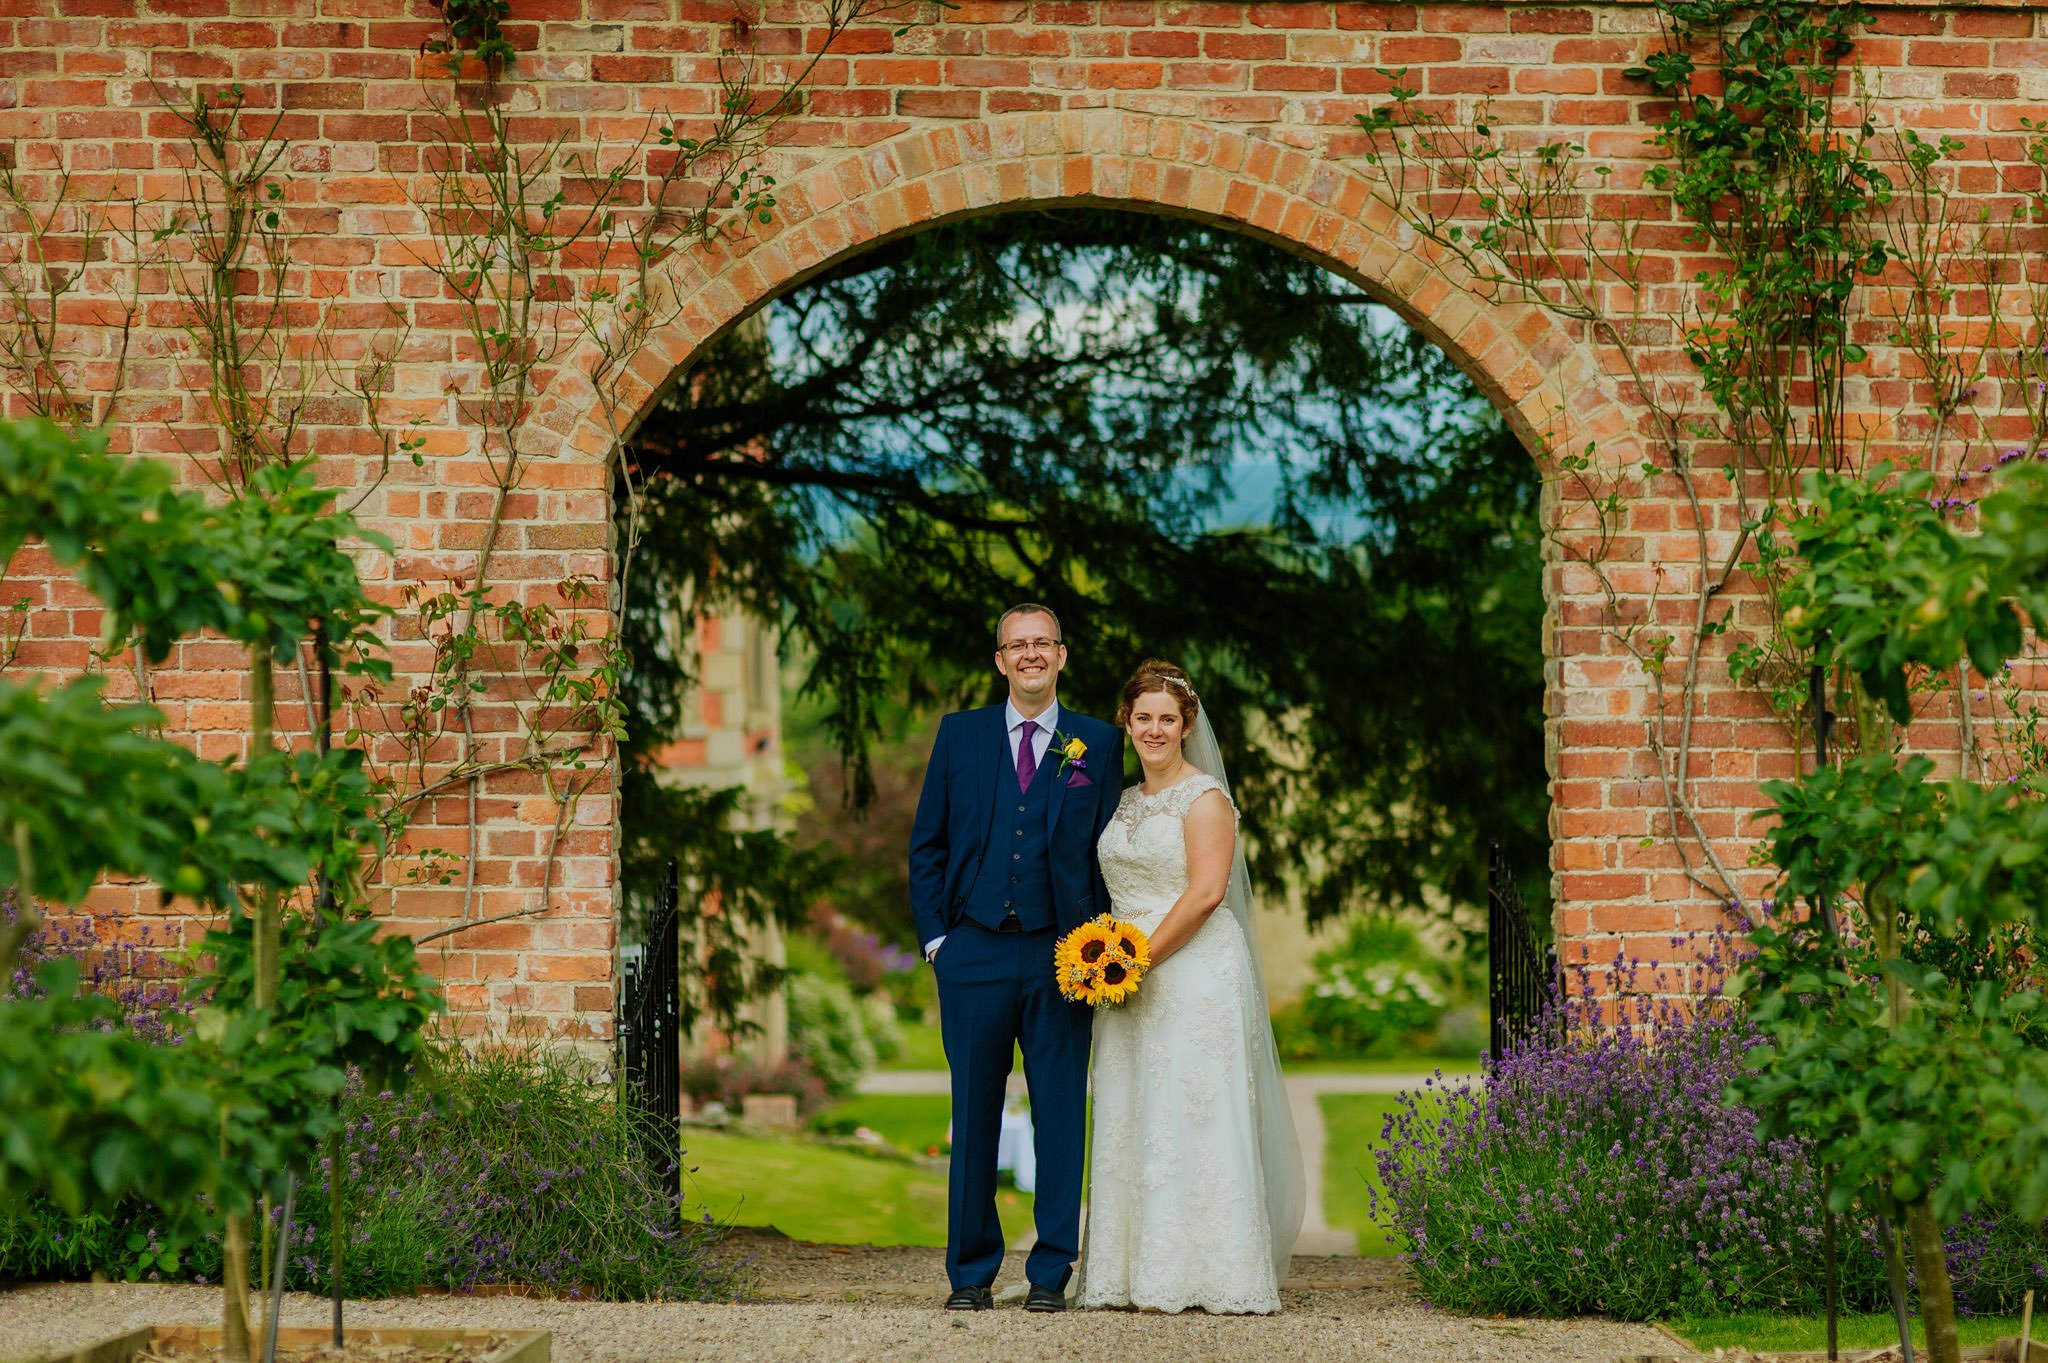 Wedding photography at Homme House in Herefordshire, West Midlands 85